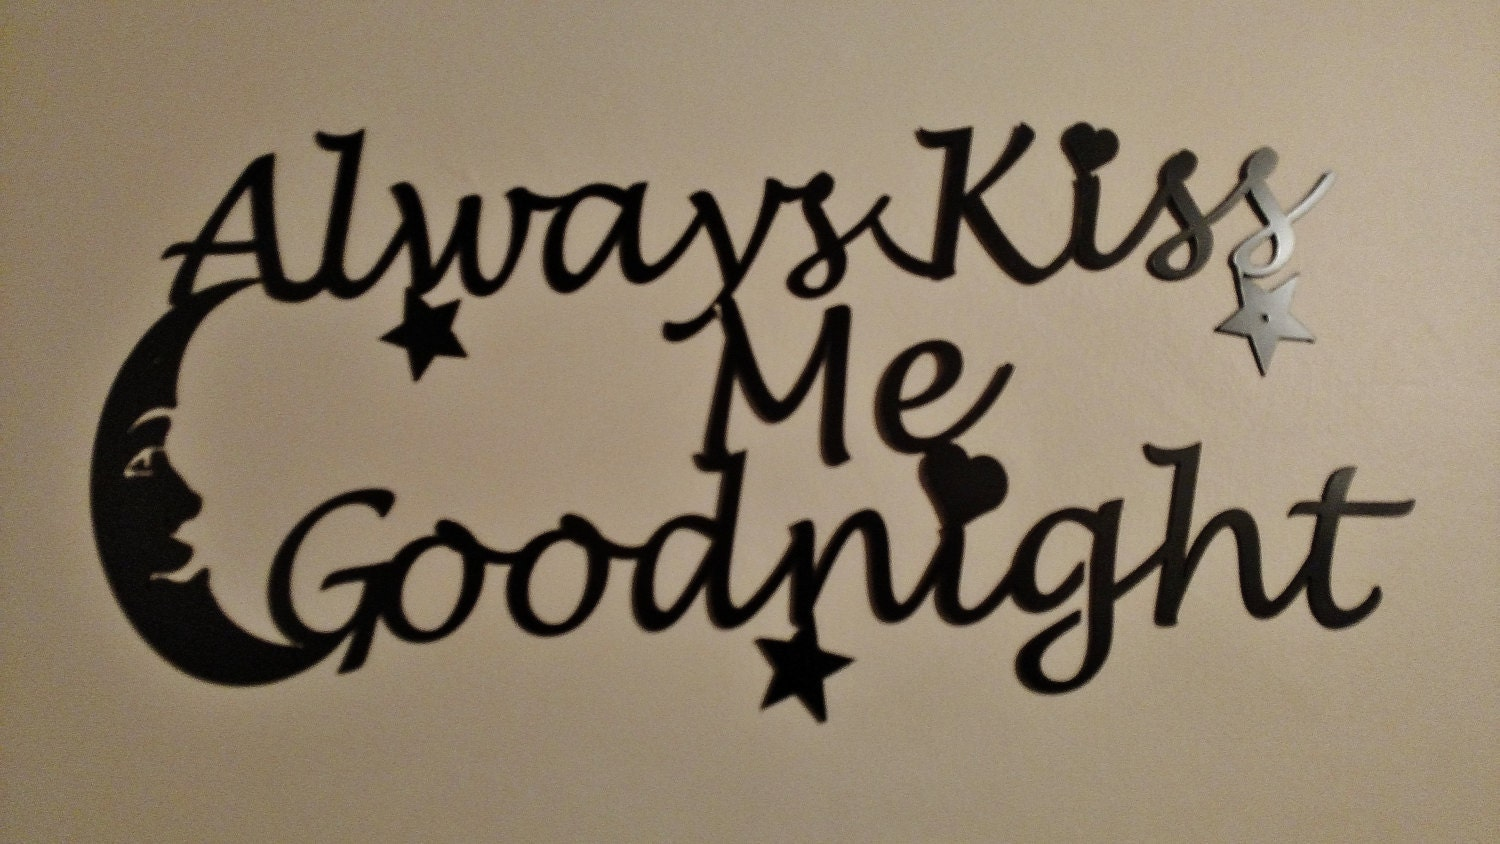 Always Kiss Me Goodnight Wall Art always kiss me goodnight stencil art, metal art, wall art, plasma